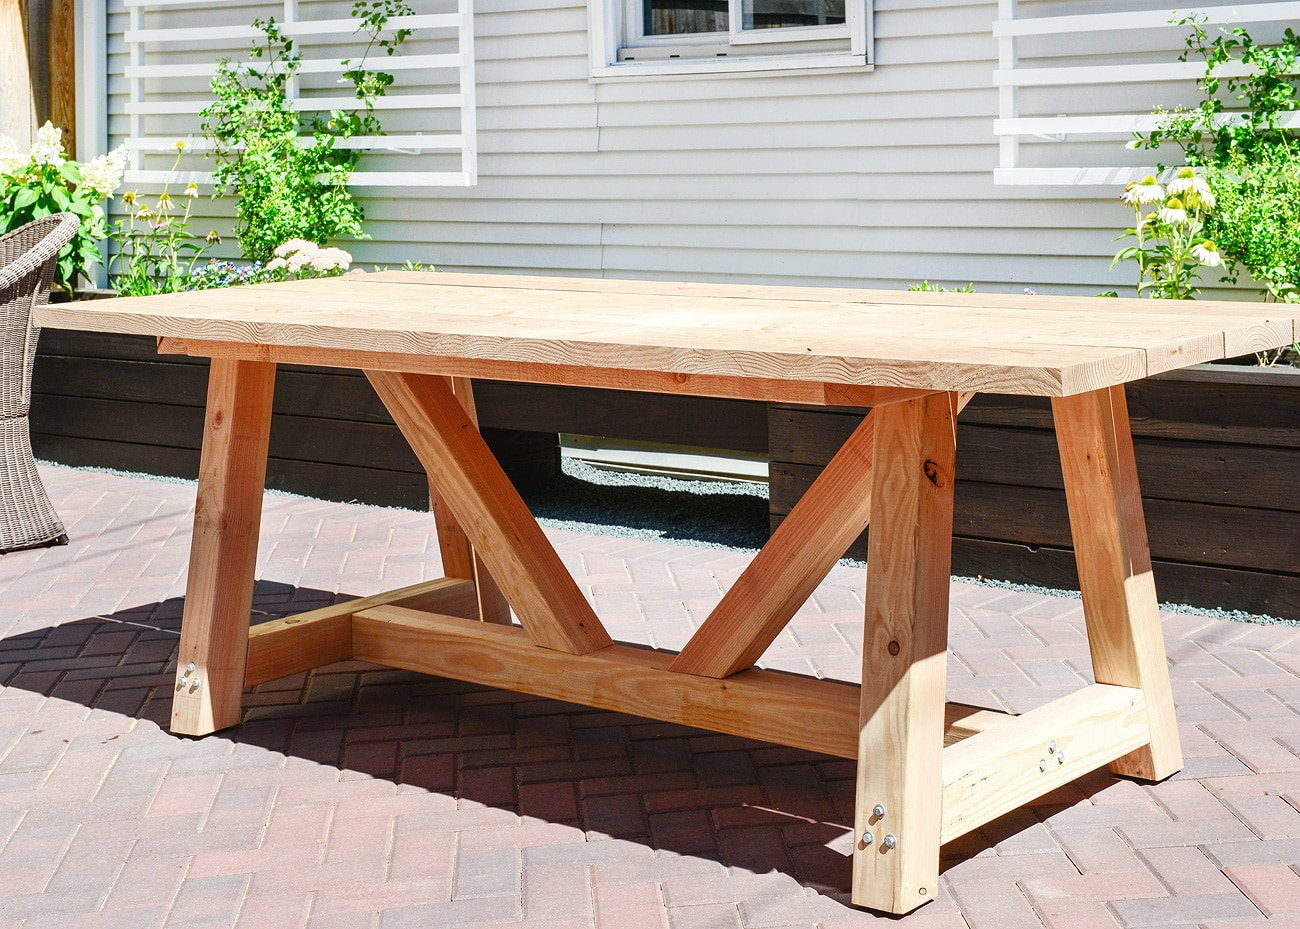 Our diy patio table part i yellow brick home for Diy garden table designs